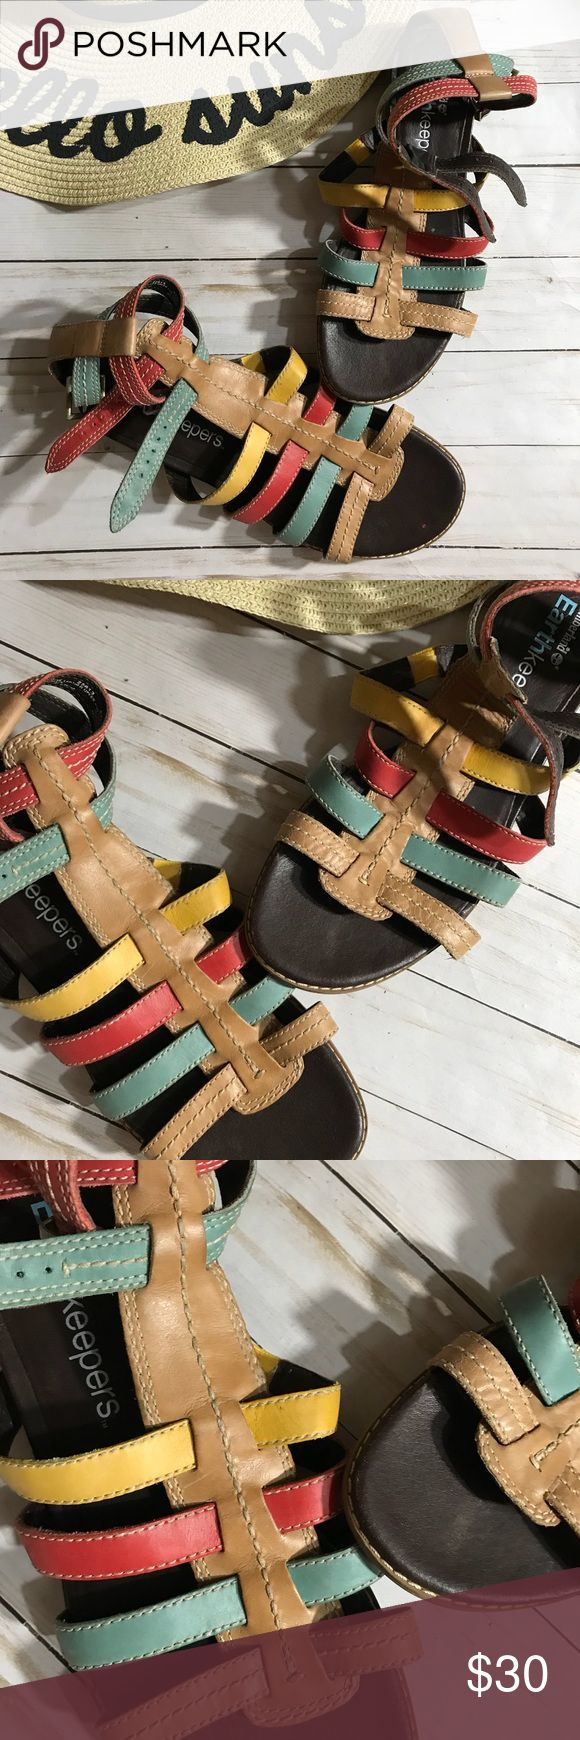 Timberland Earthkeepers Sandals Shoes - 8 Timberland Earthkeeper shoes sandals in great condition.  Very minimal wear.  Feature colorful leather straps and double ankle straps.  Super clean inside! Timberland Shoes Sandals